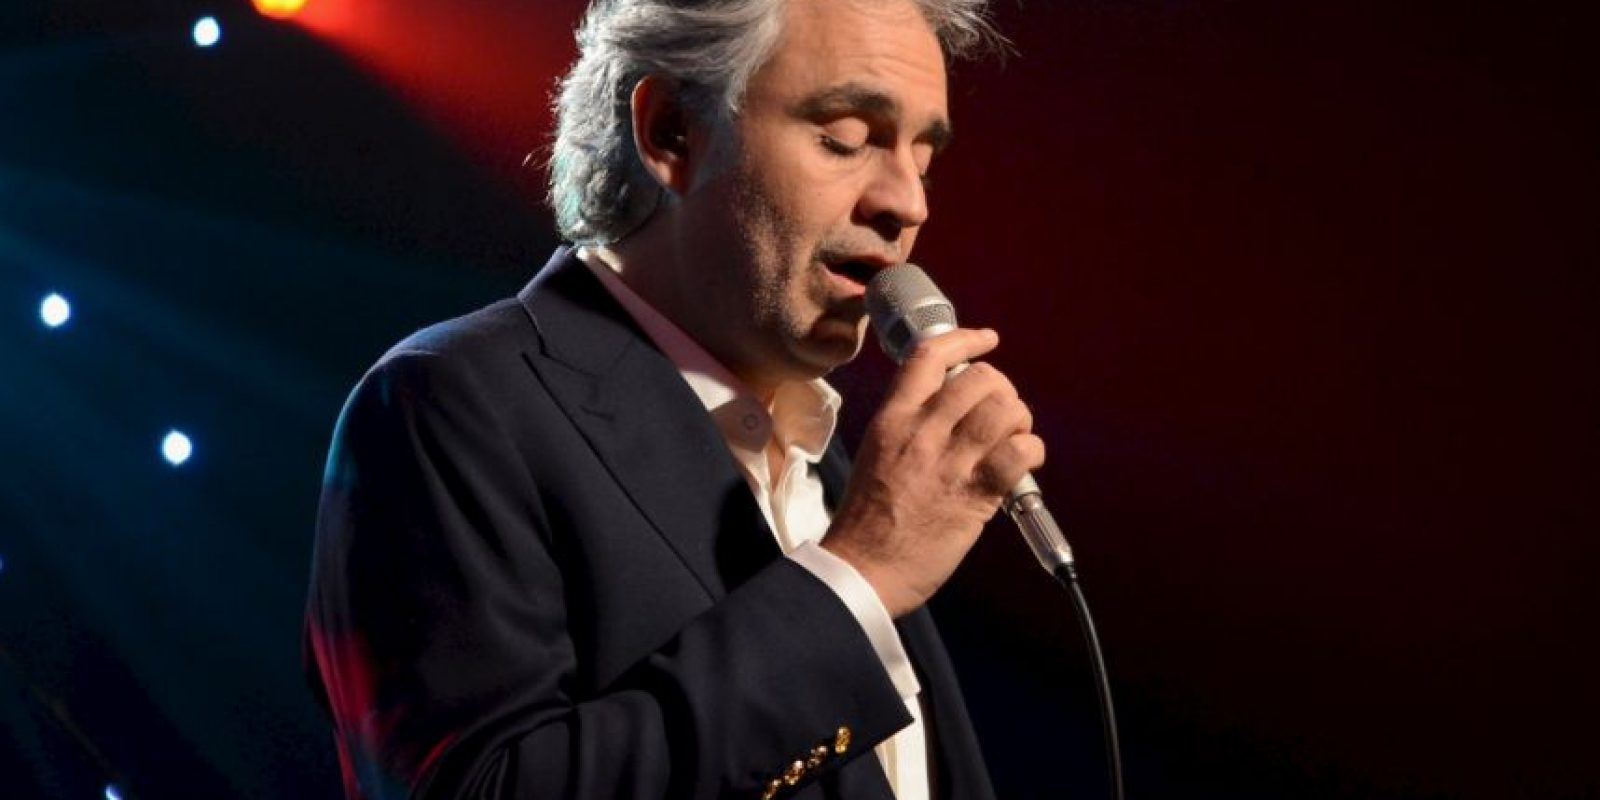 3. Andrea Bocelli Foto: Getty Images